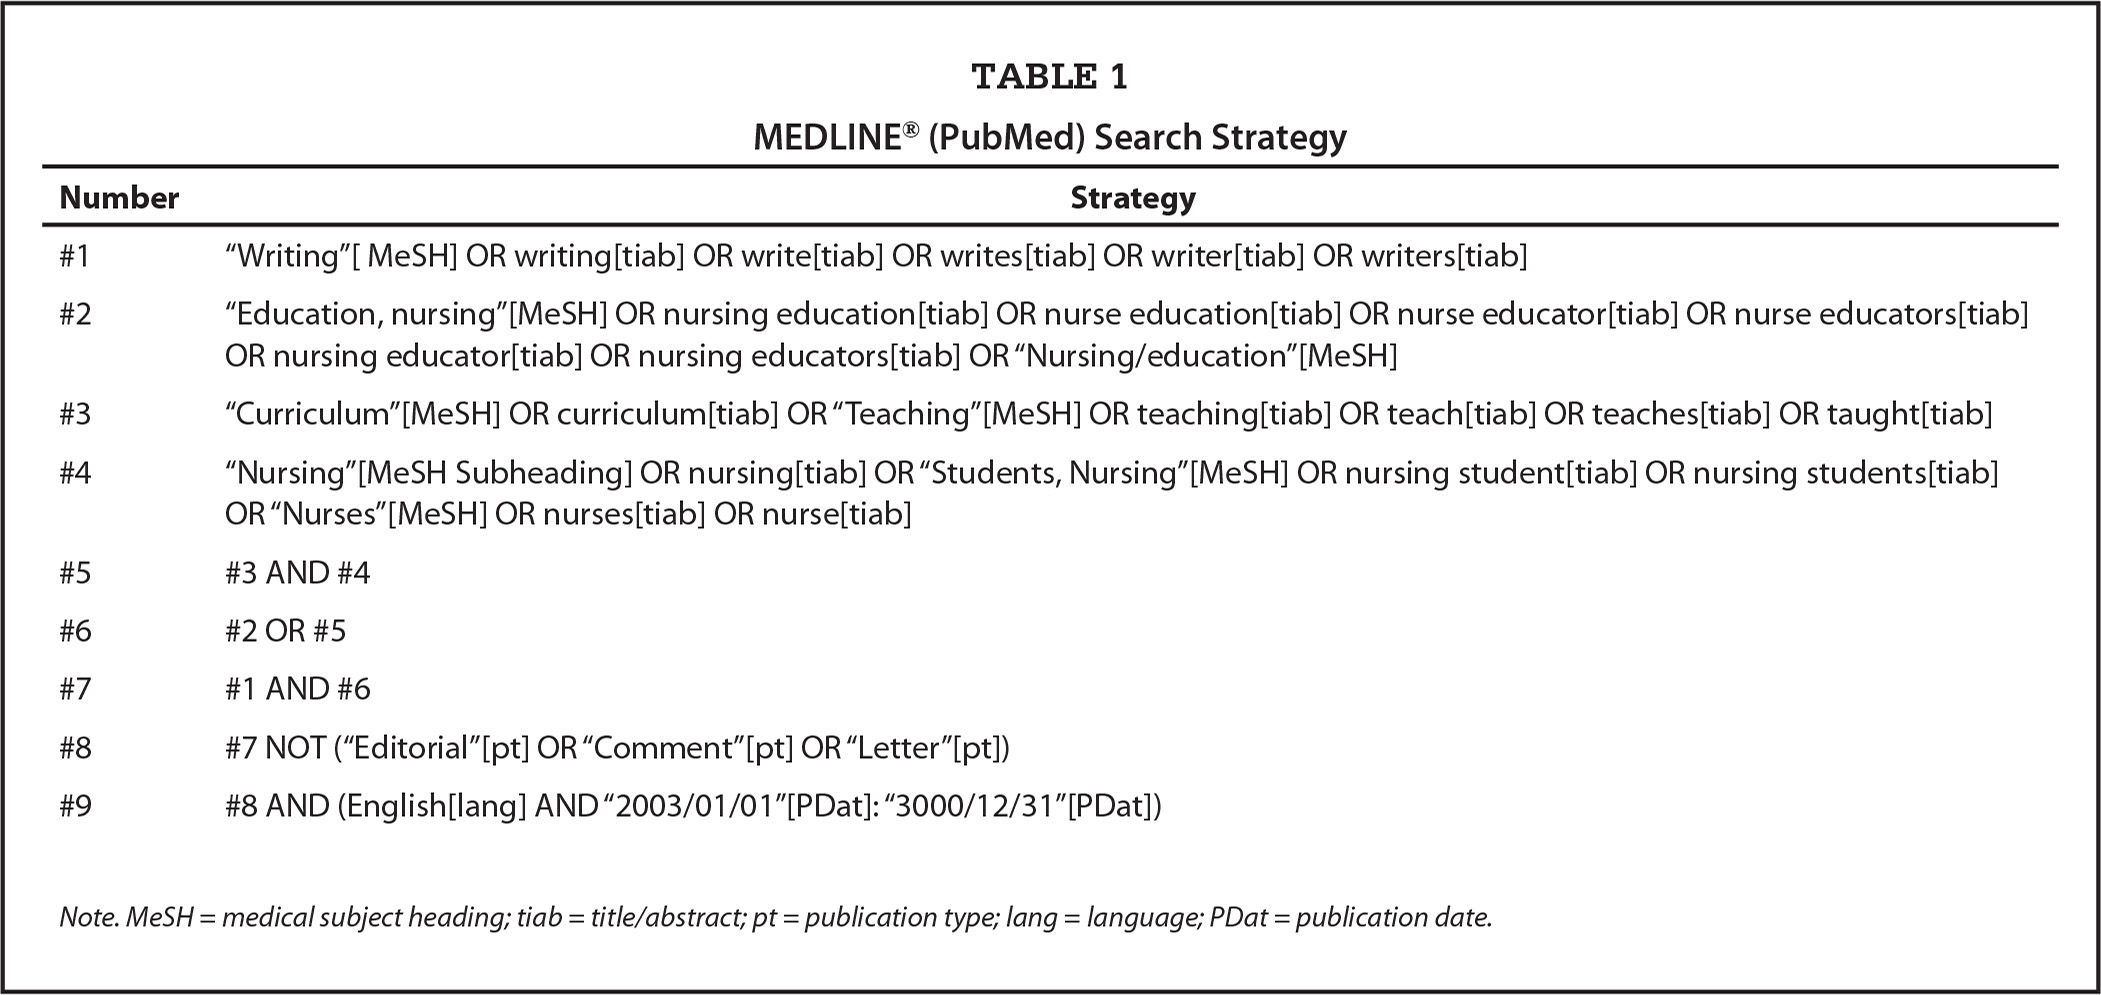 MEDLINE® (PubMed) Search Strategy